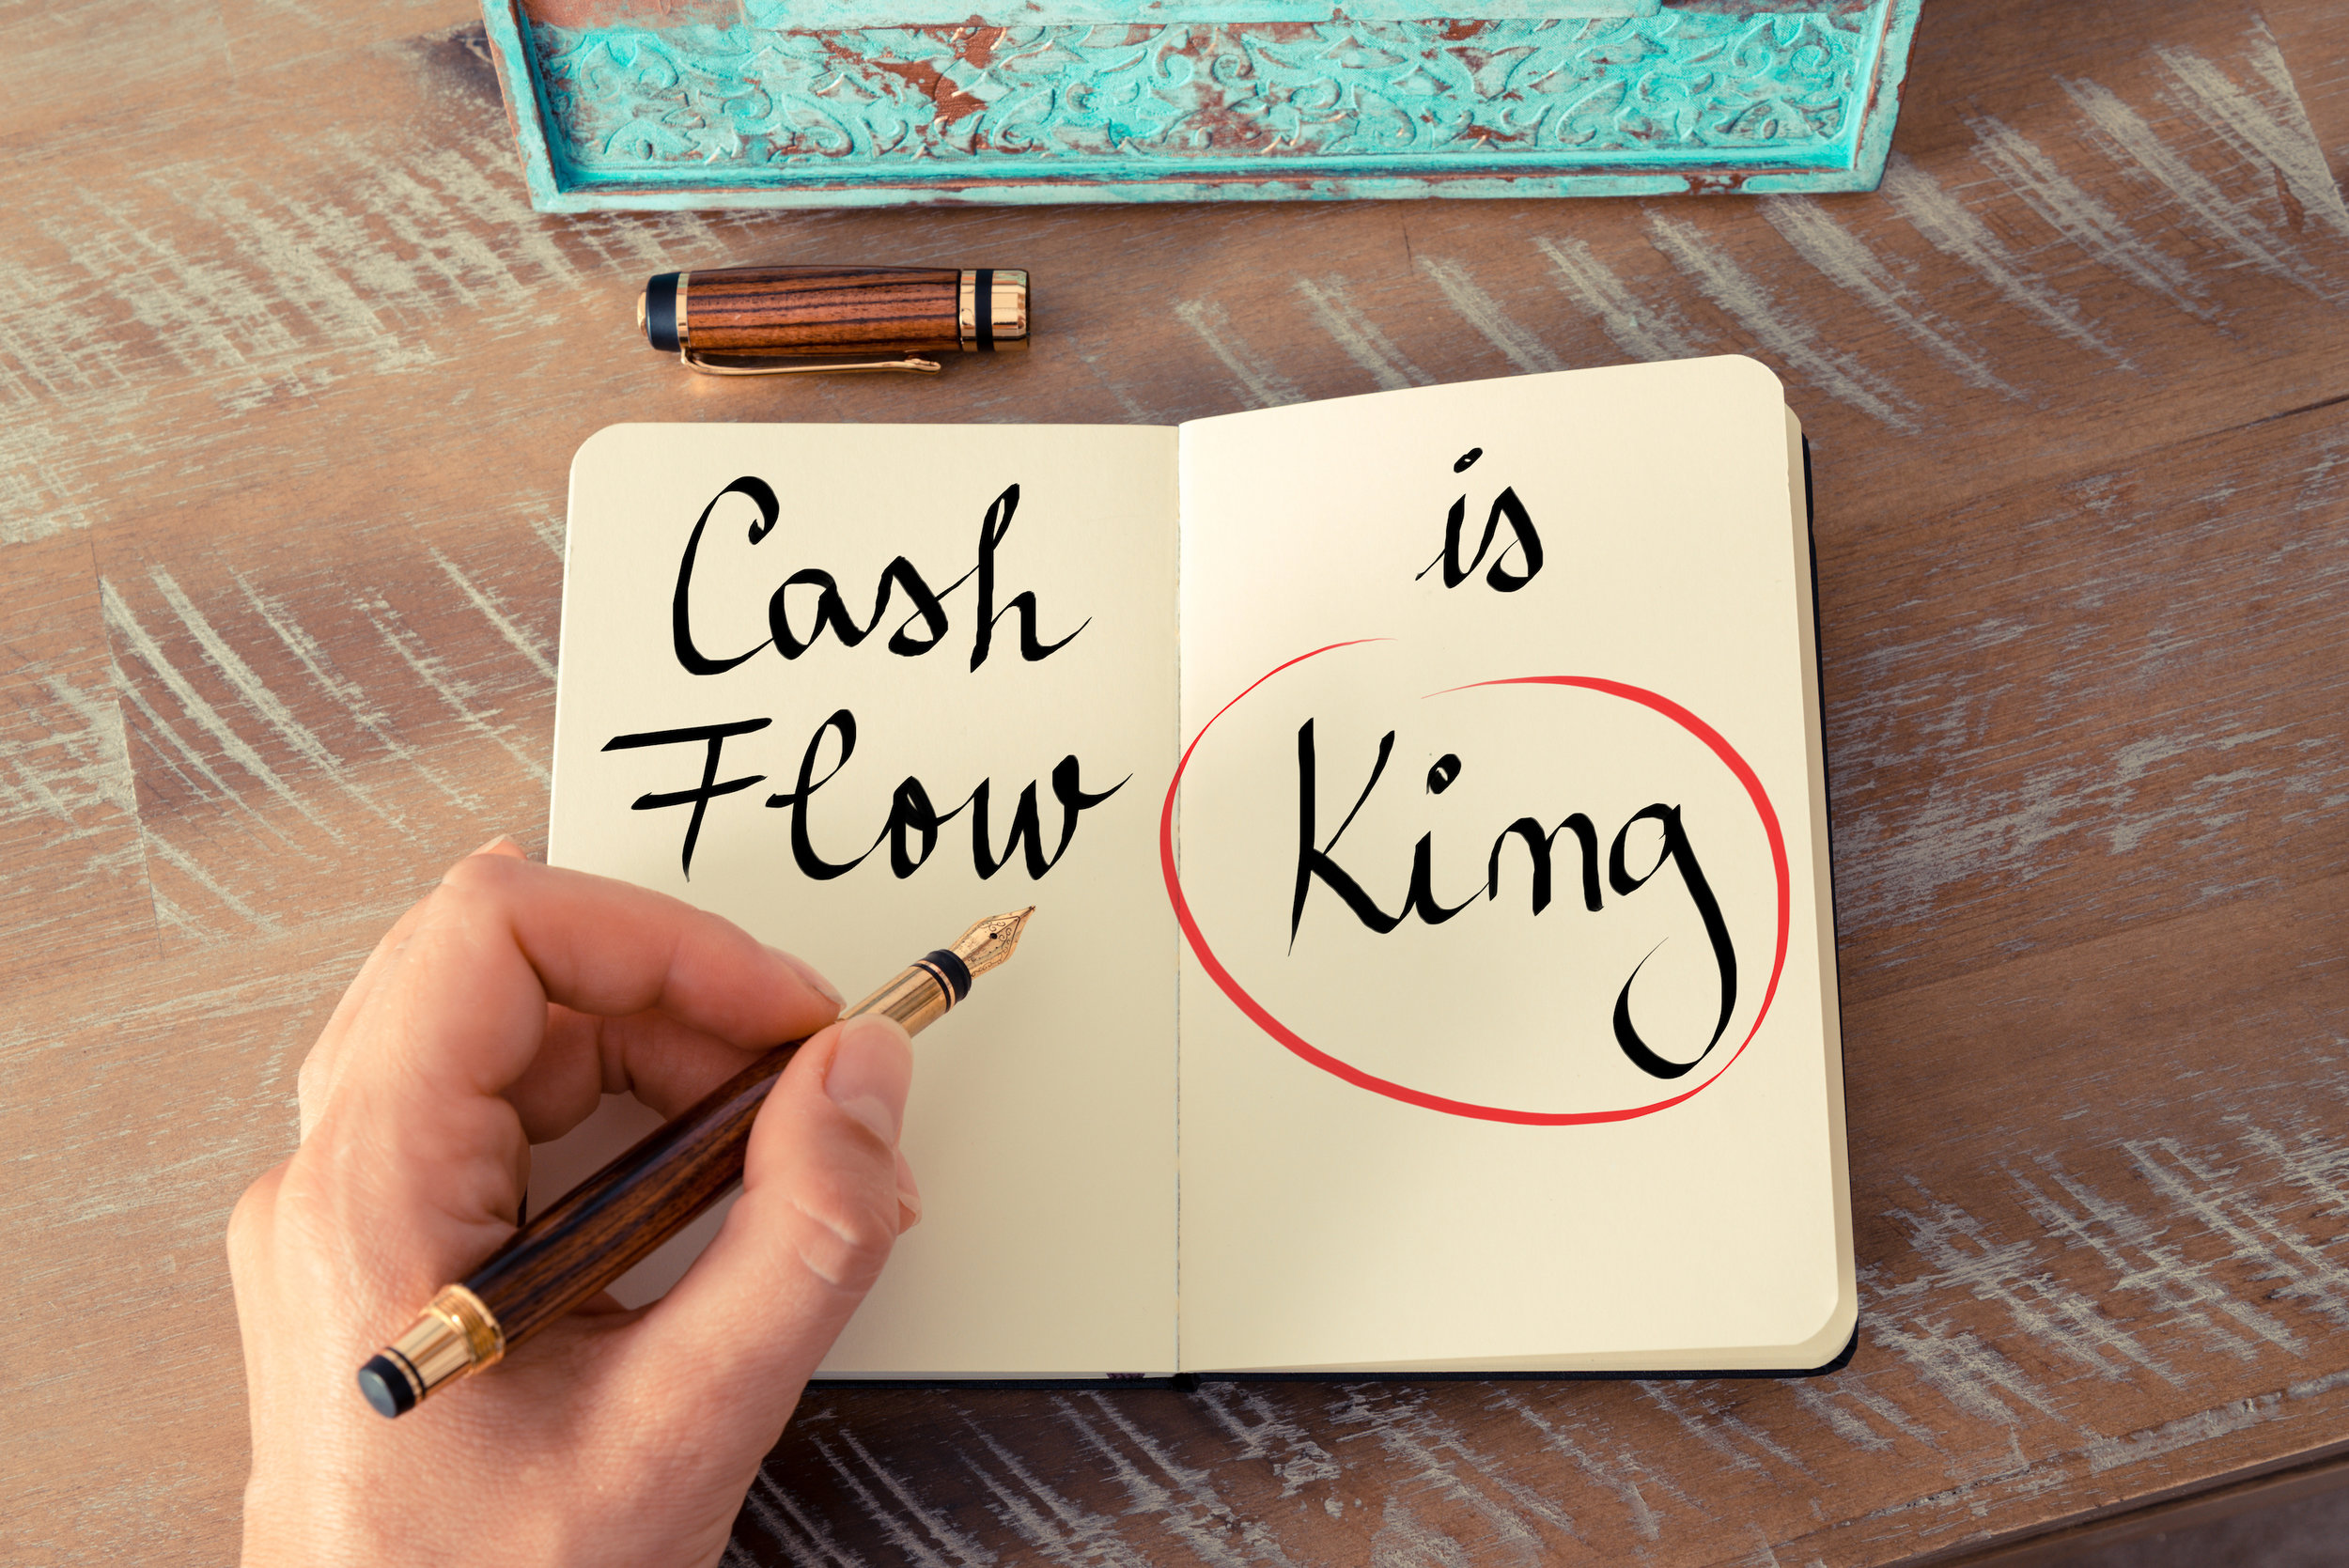 Cash flow is king.jpg